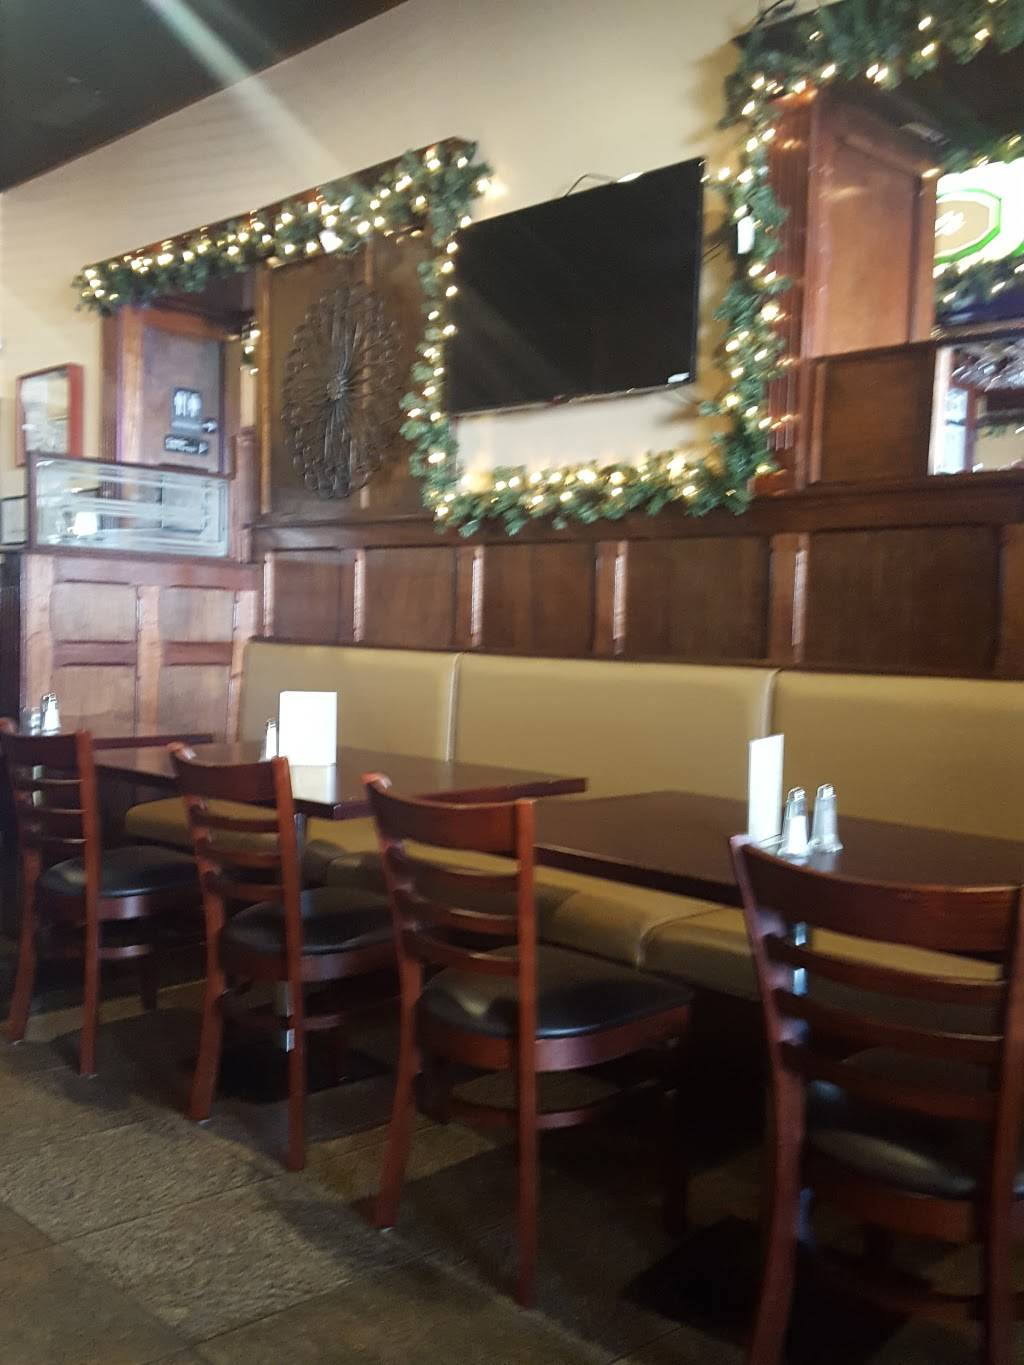 The New Maggies Bar & Grill | restaurant | 442 Hackensack St, Carlstadt, NJ 07072, USA | 2019399769 OR +1 201-939-9769